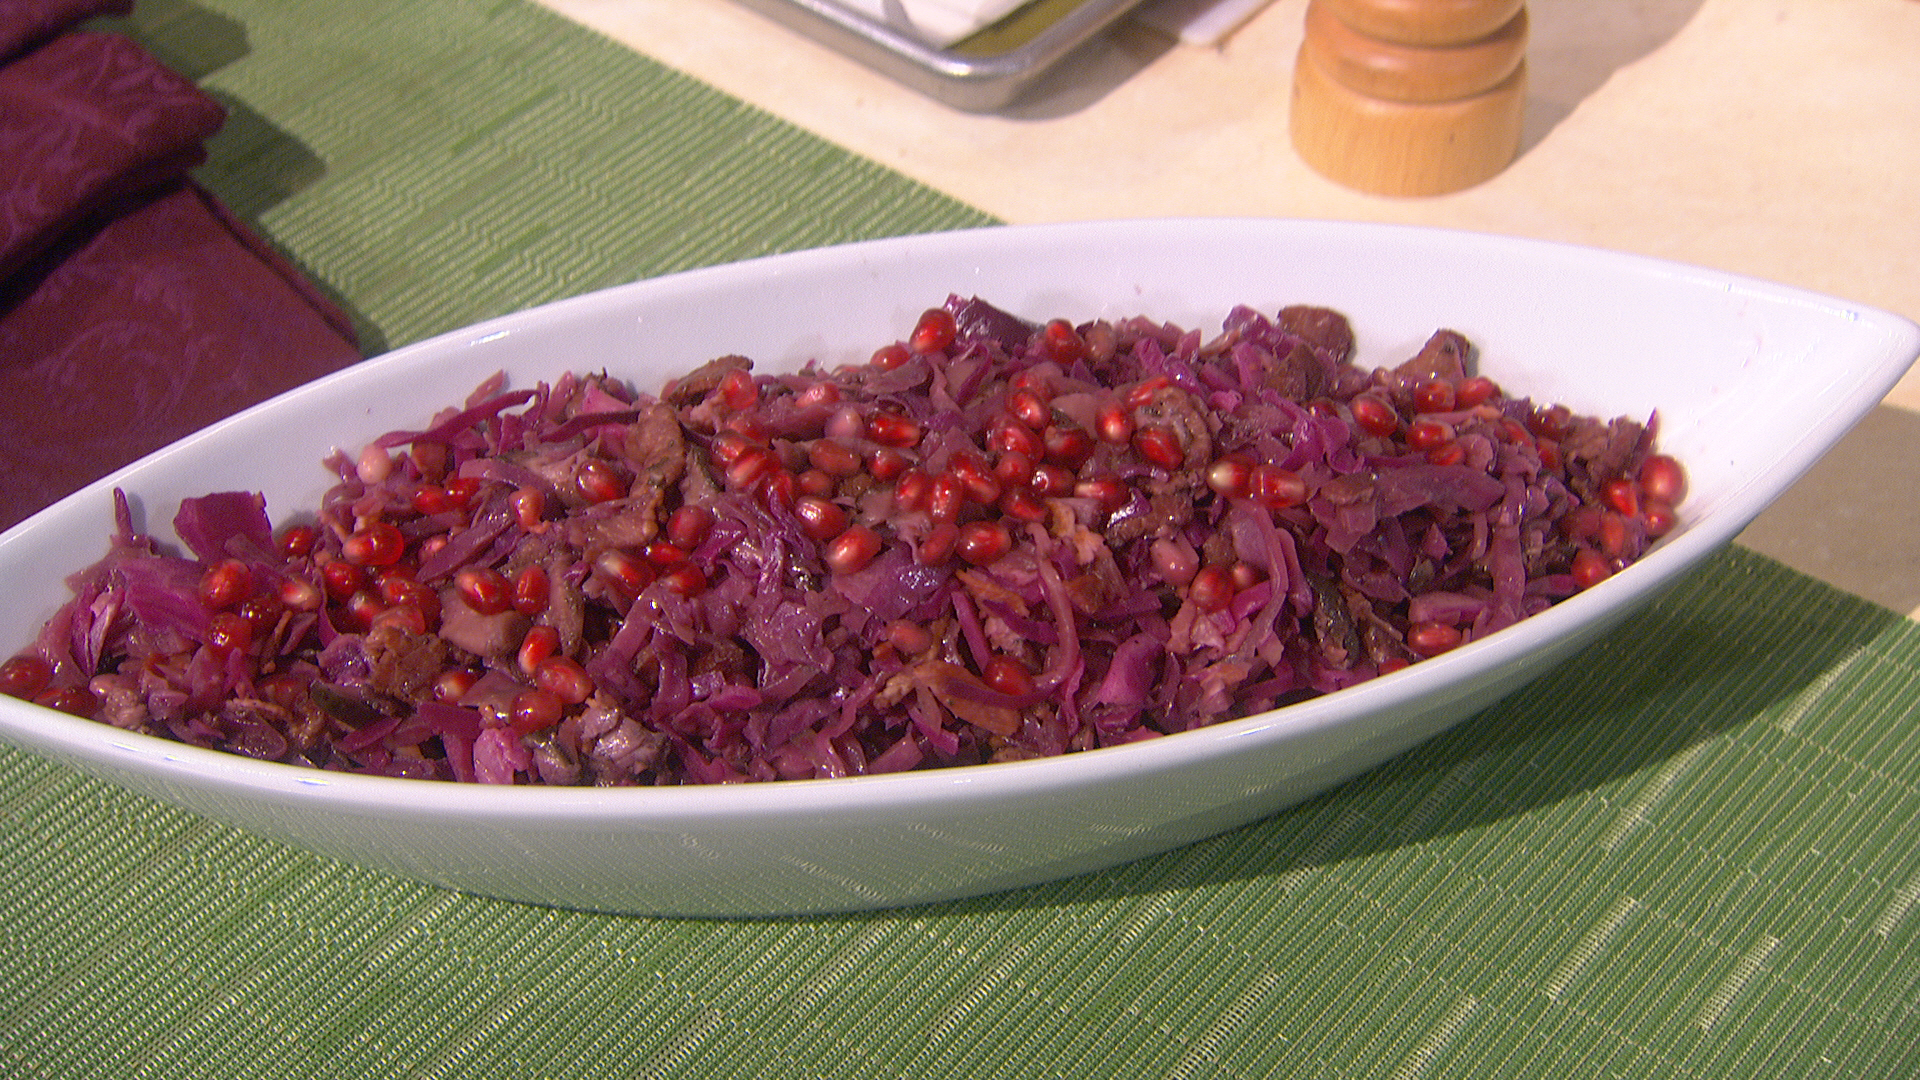 Cooking Braised Red Cabbage With Bacon